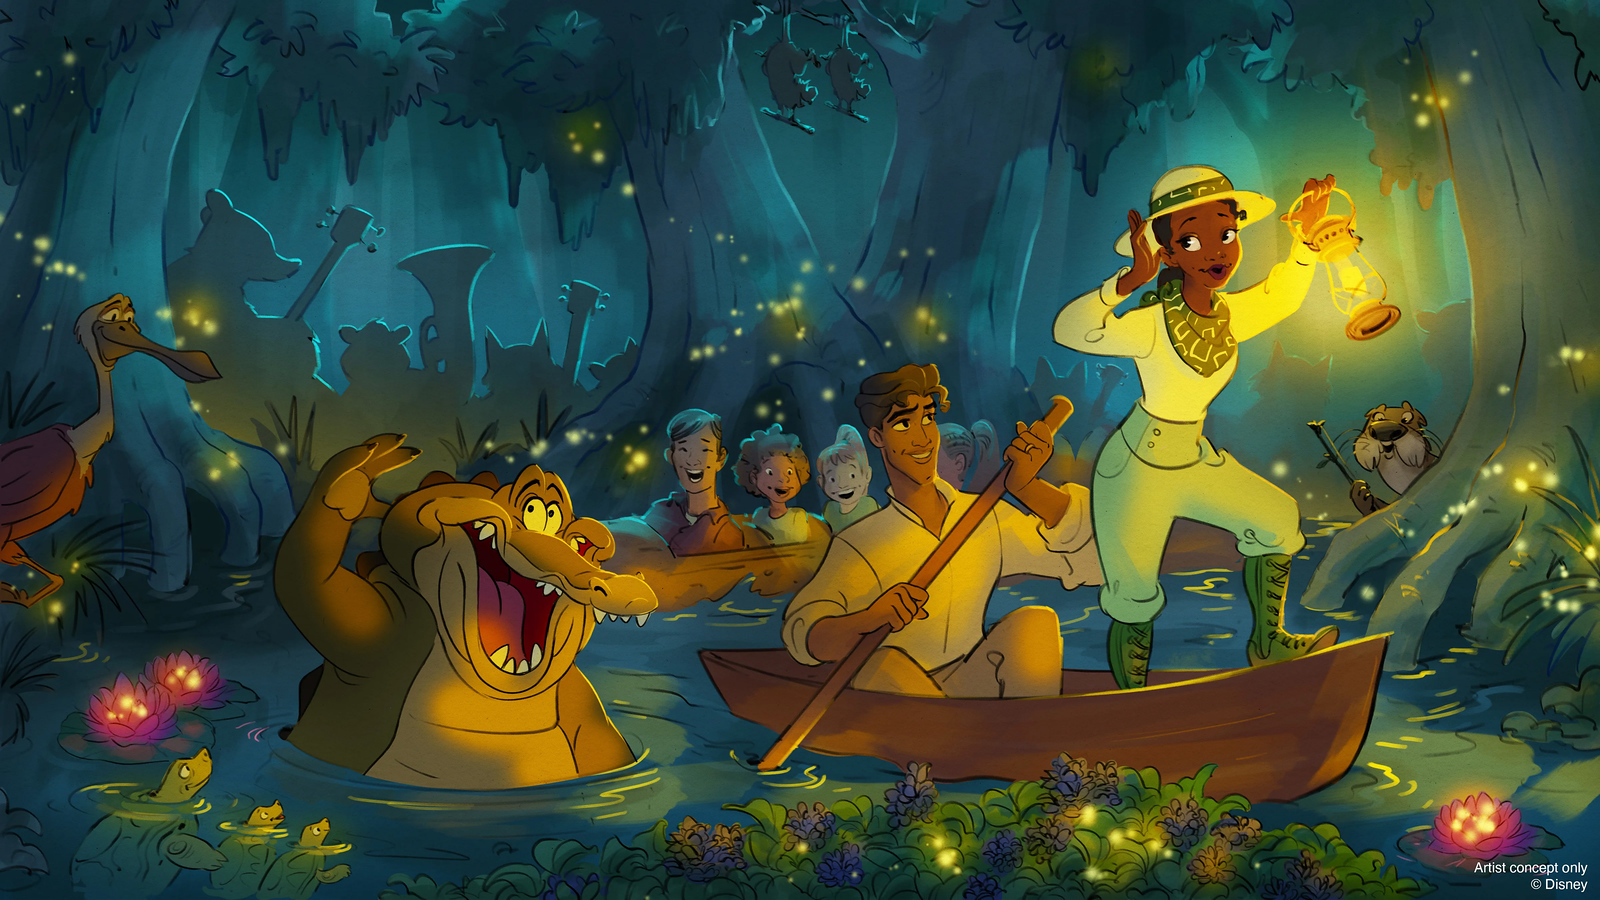 Princess-and-the-Frog-_Attraction_Rendering_2021